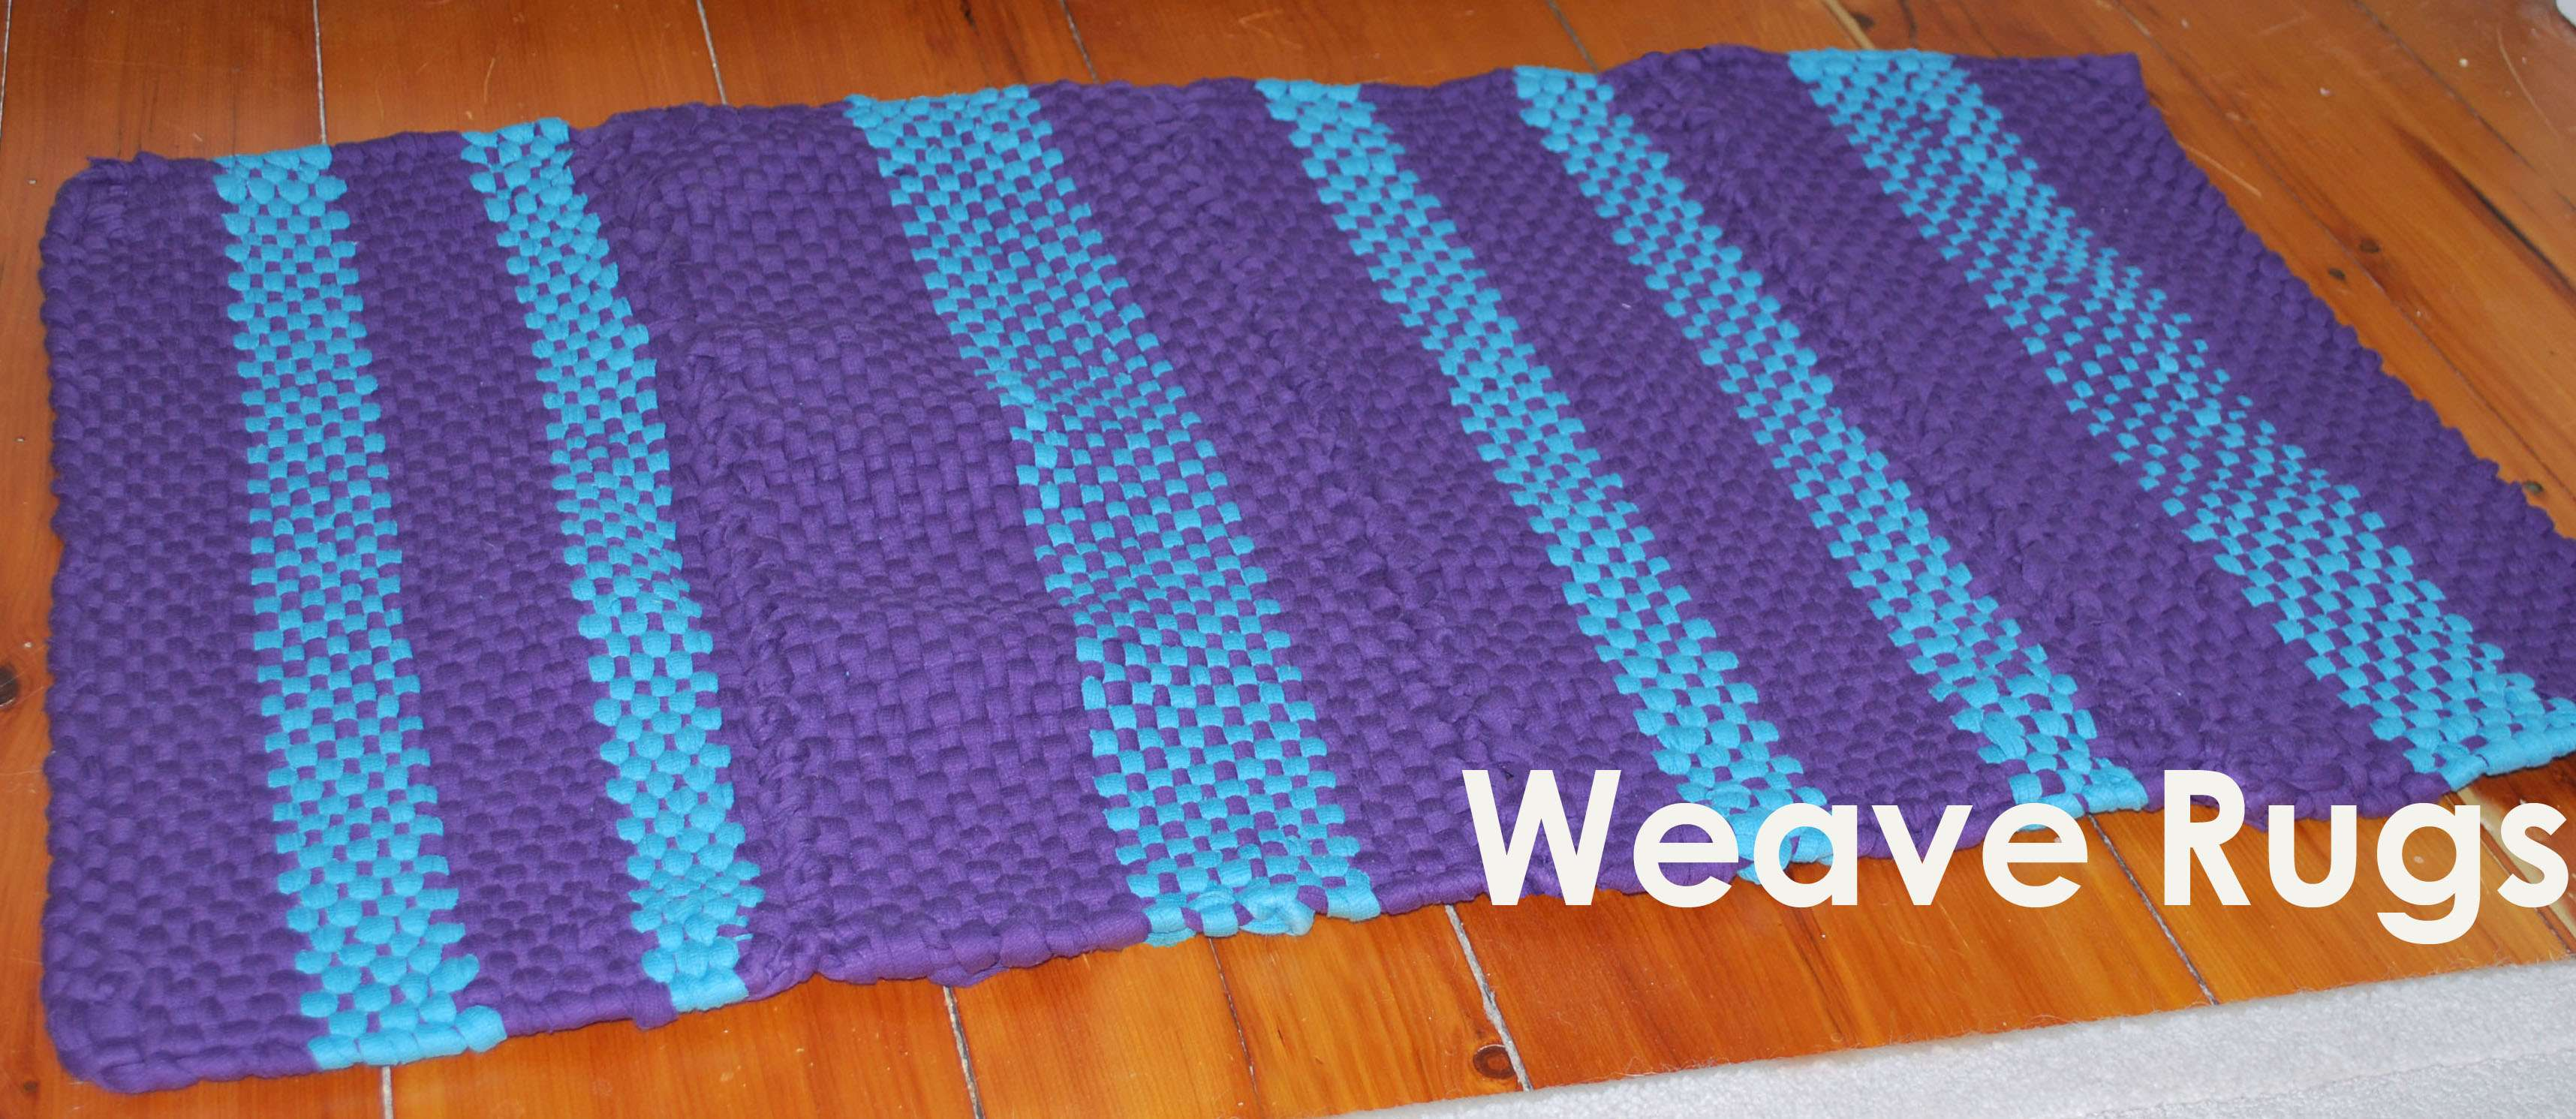 How To Knit A Rug Loom Extender Projects A Knitting Board Blog